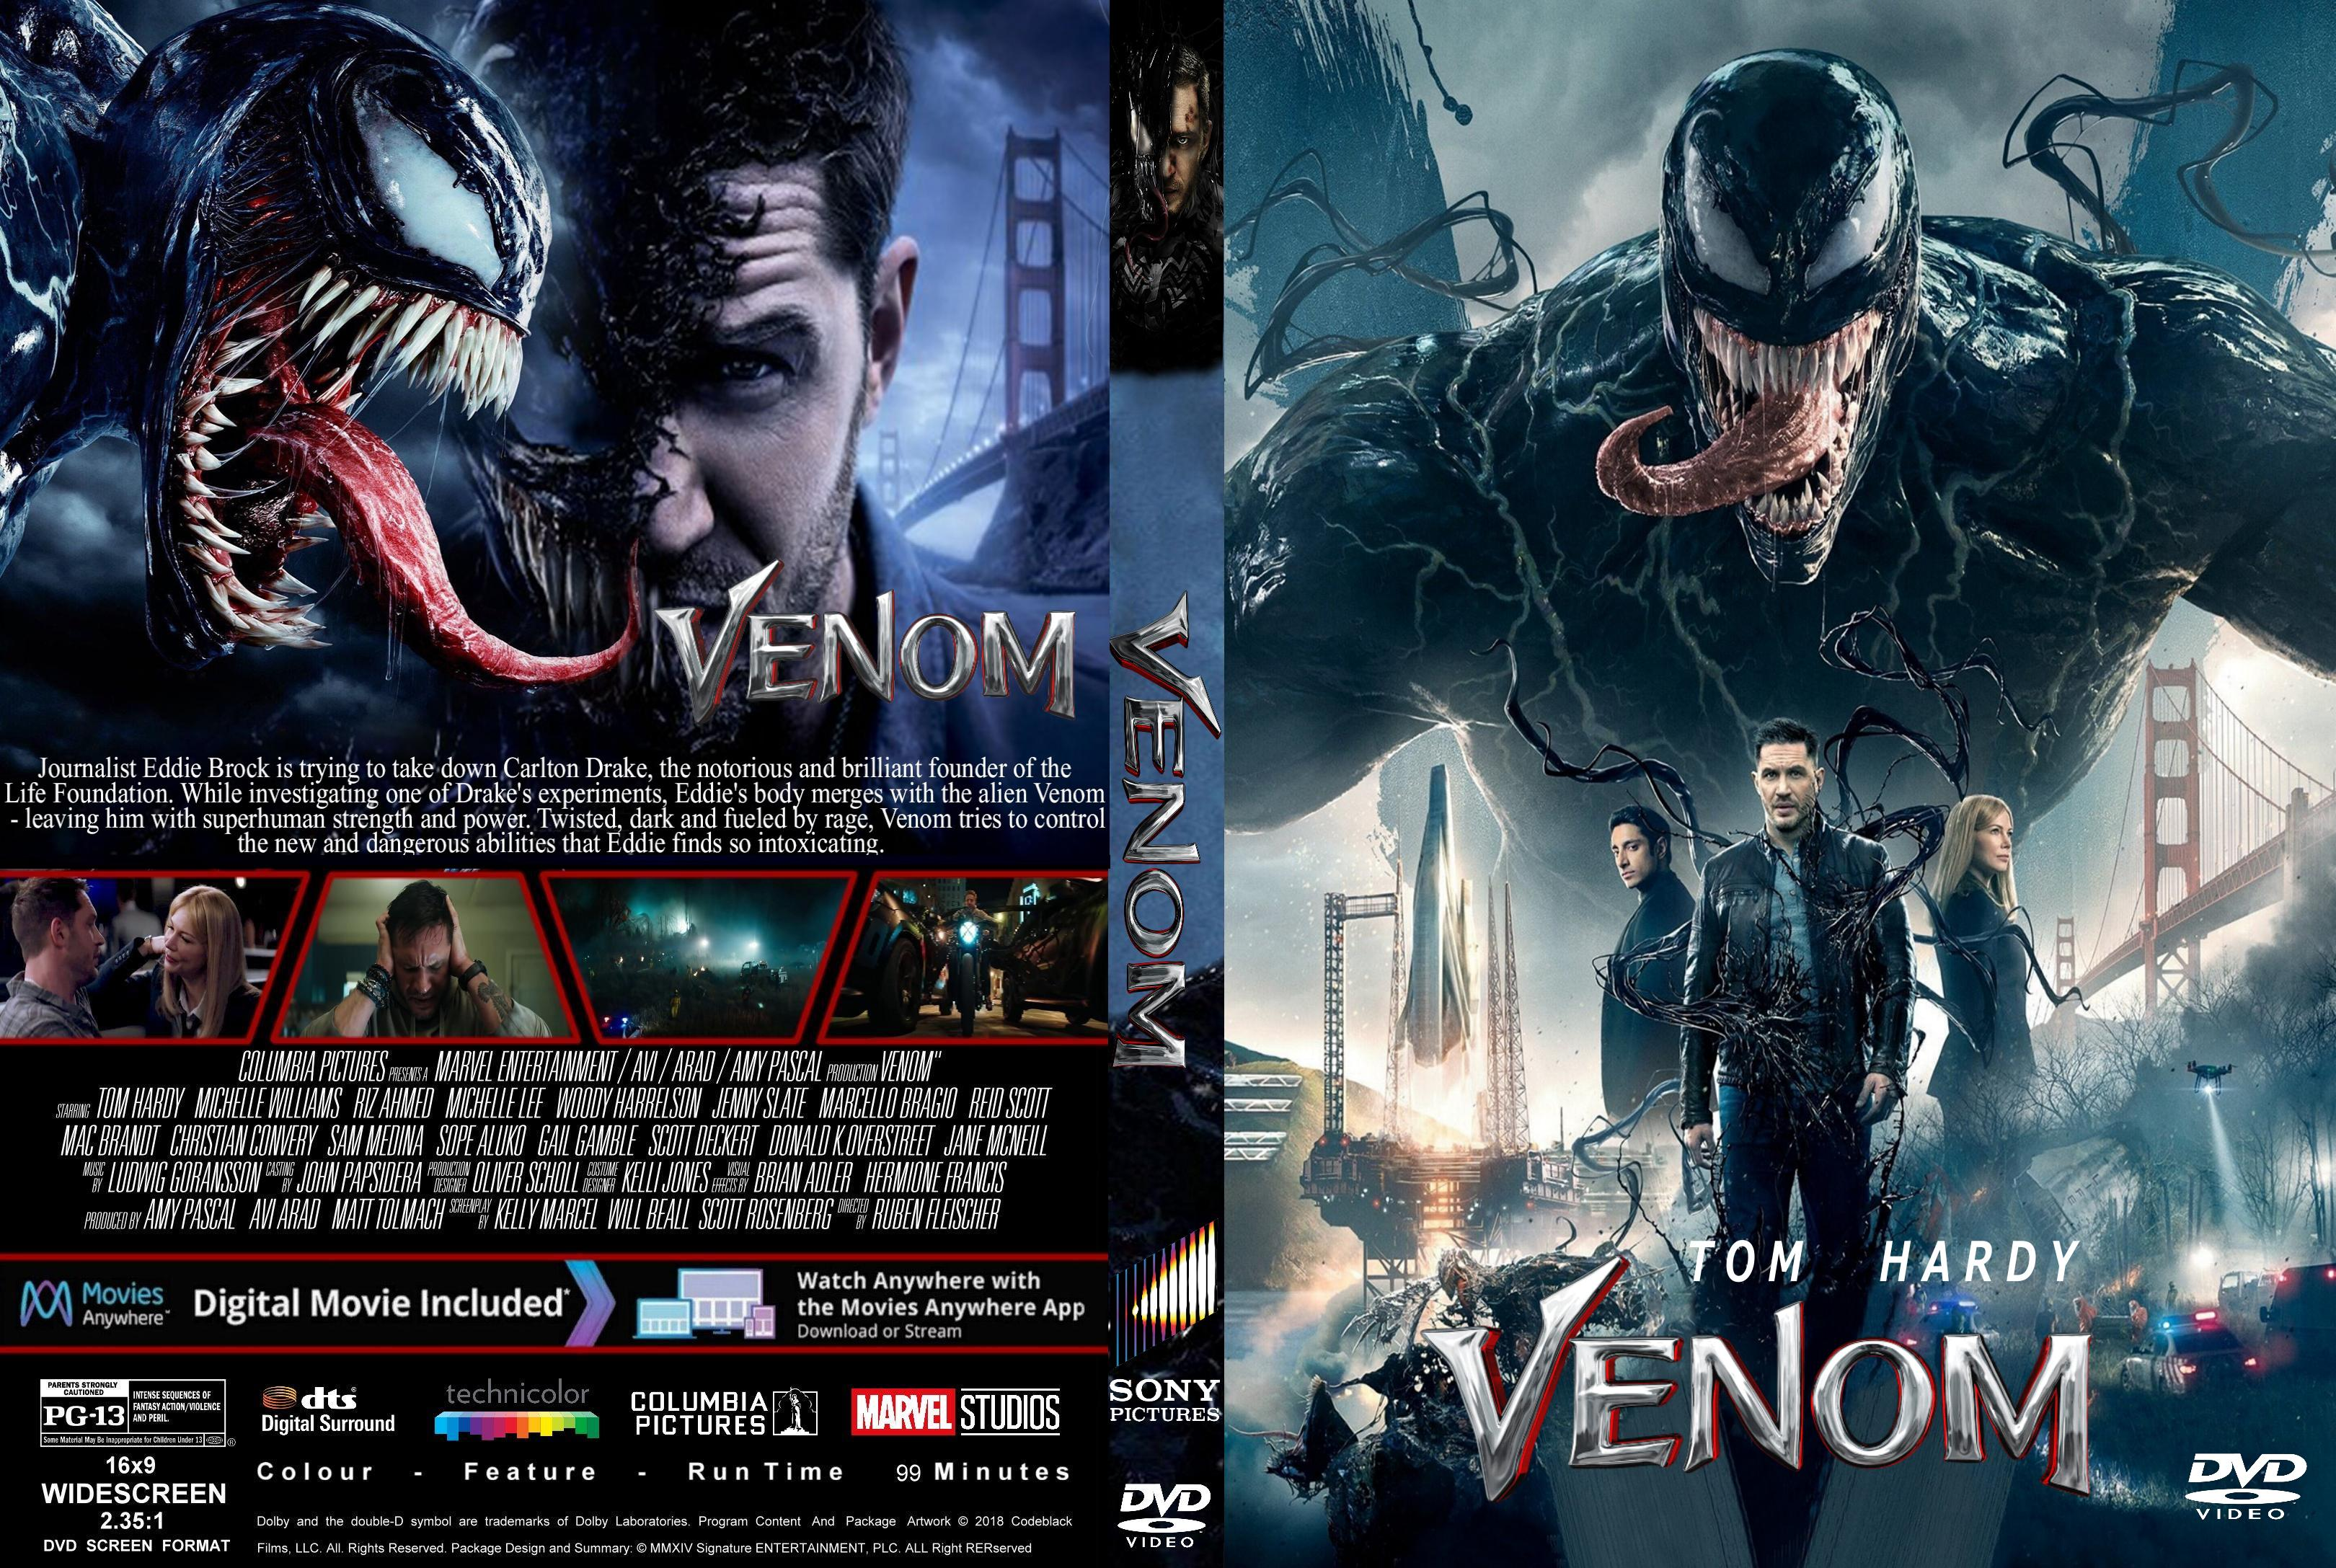 Venom (2018) : Front   DVD Covers   Cover Century   Over